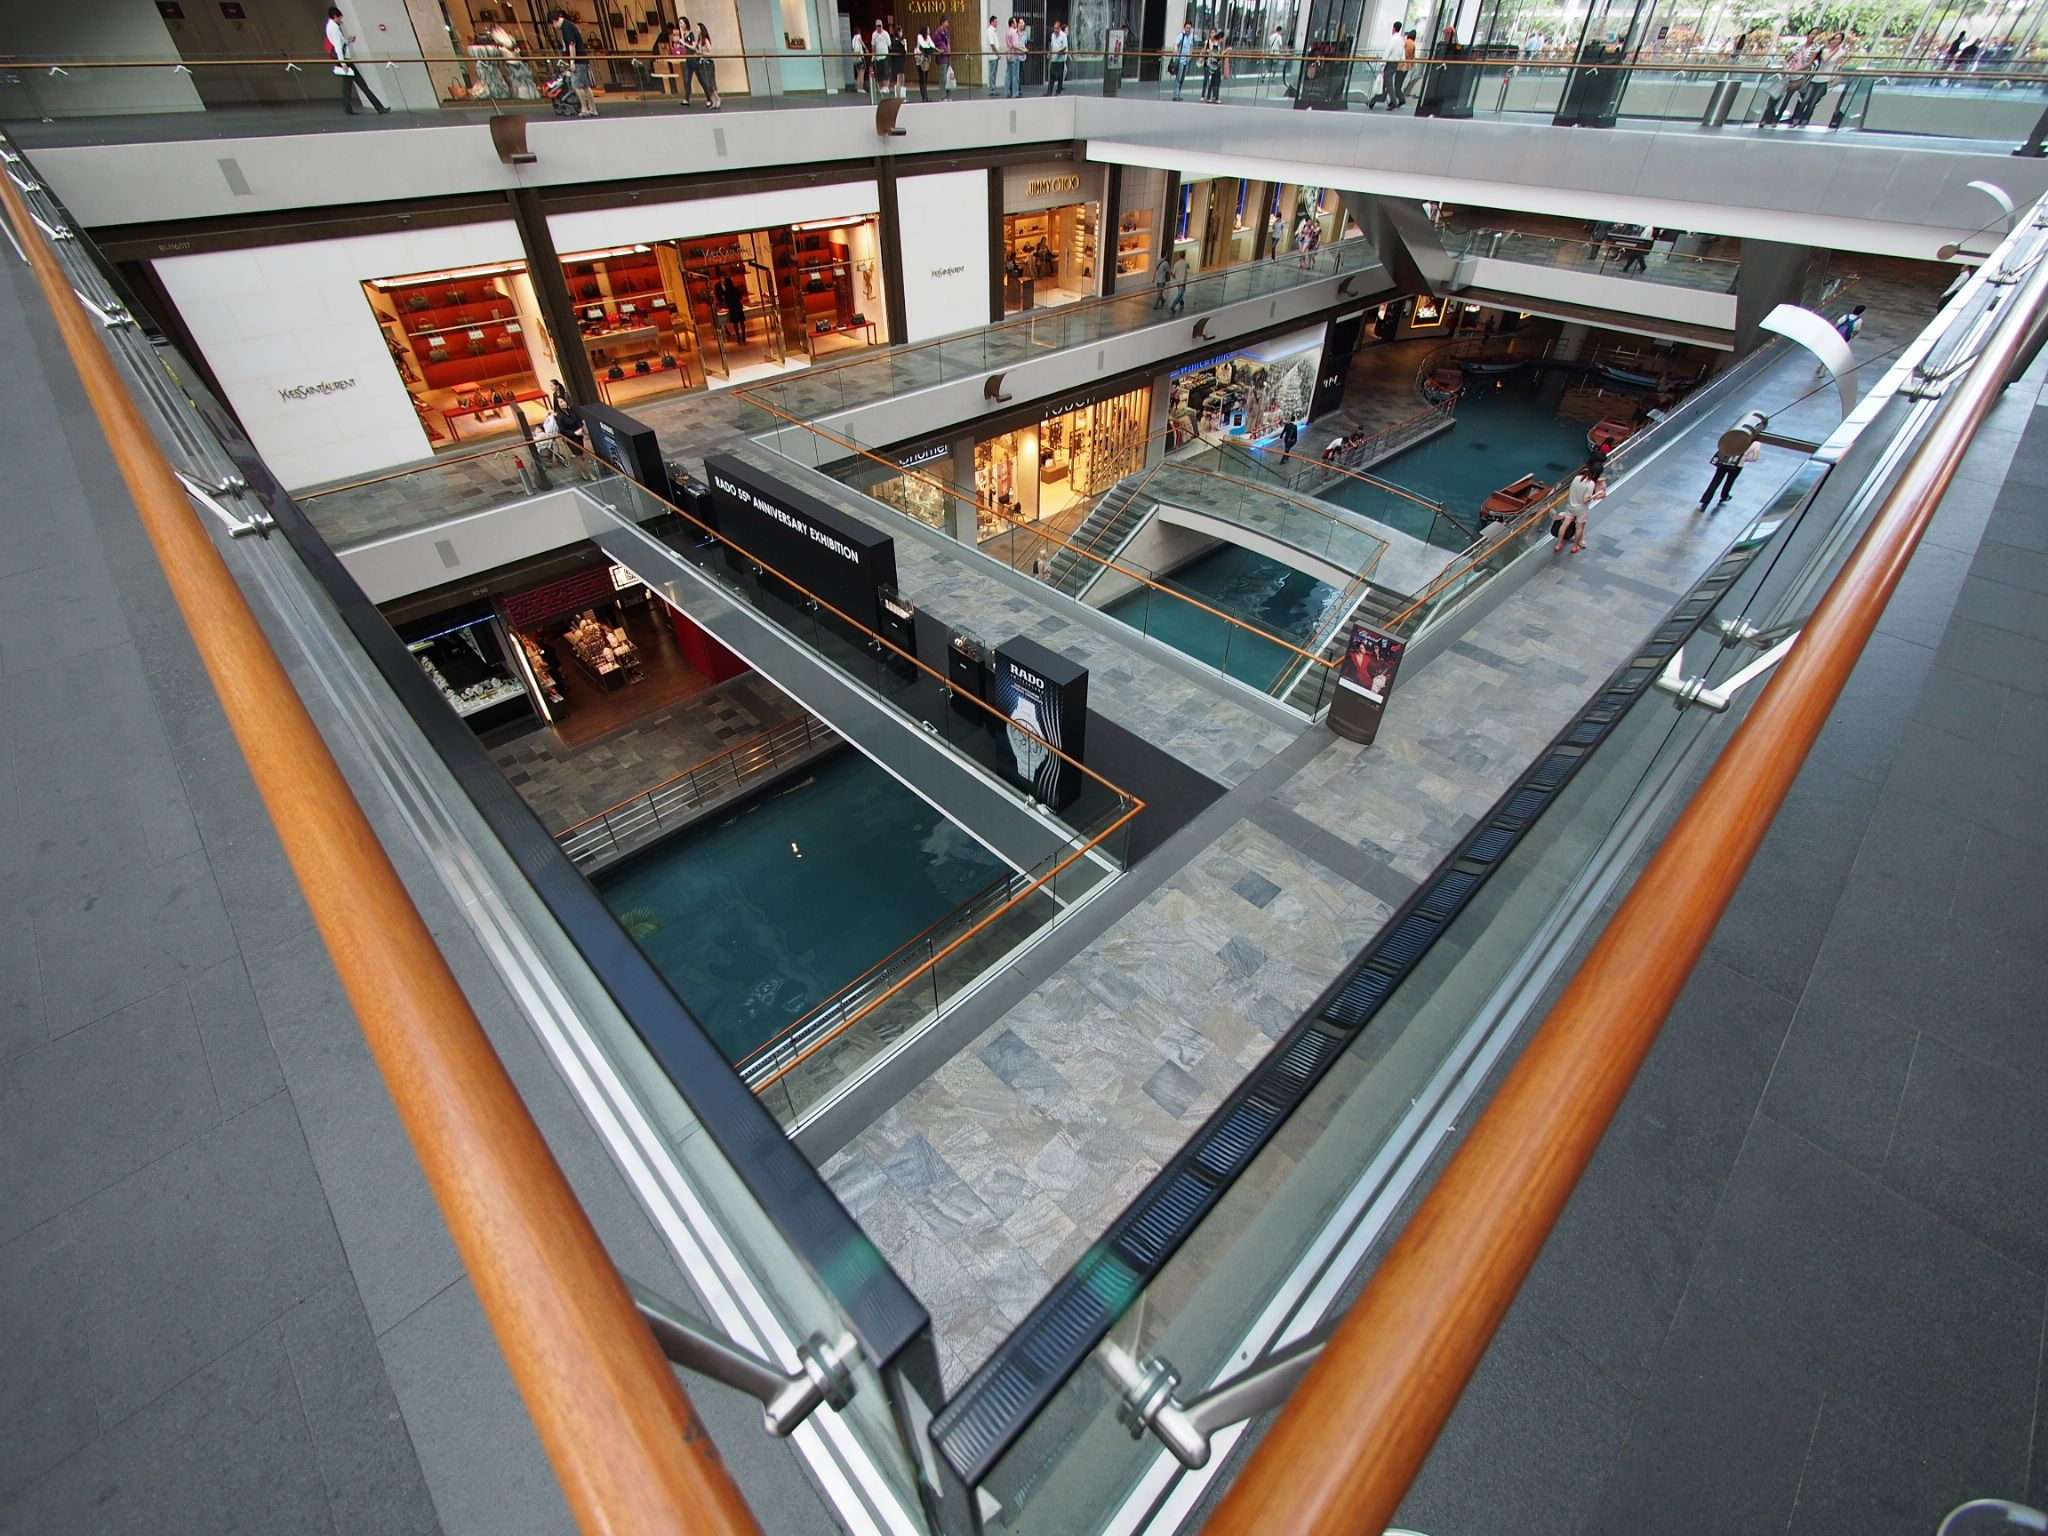 the shoppes at mbs by Victor Kam